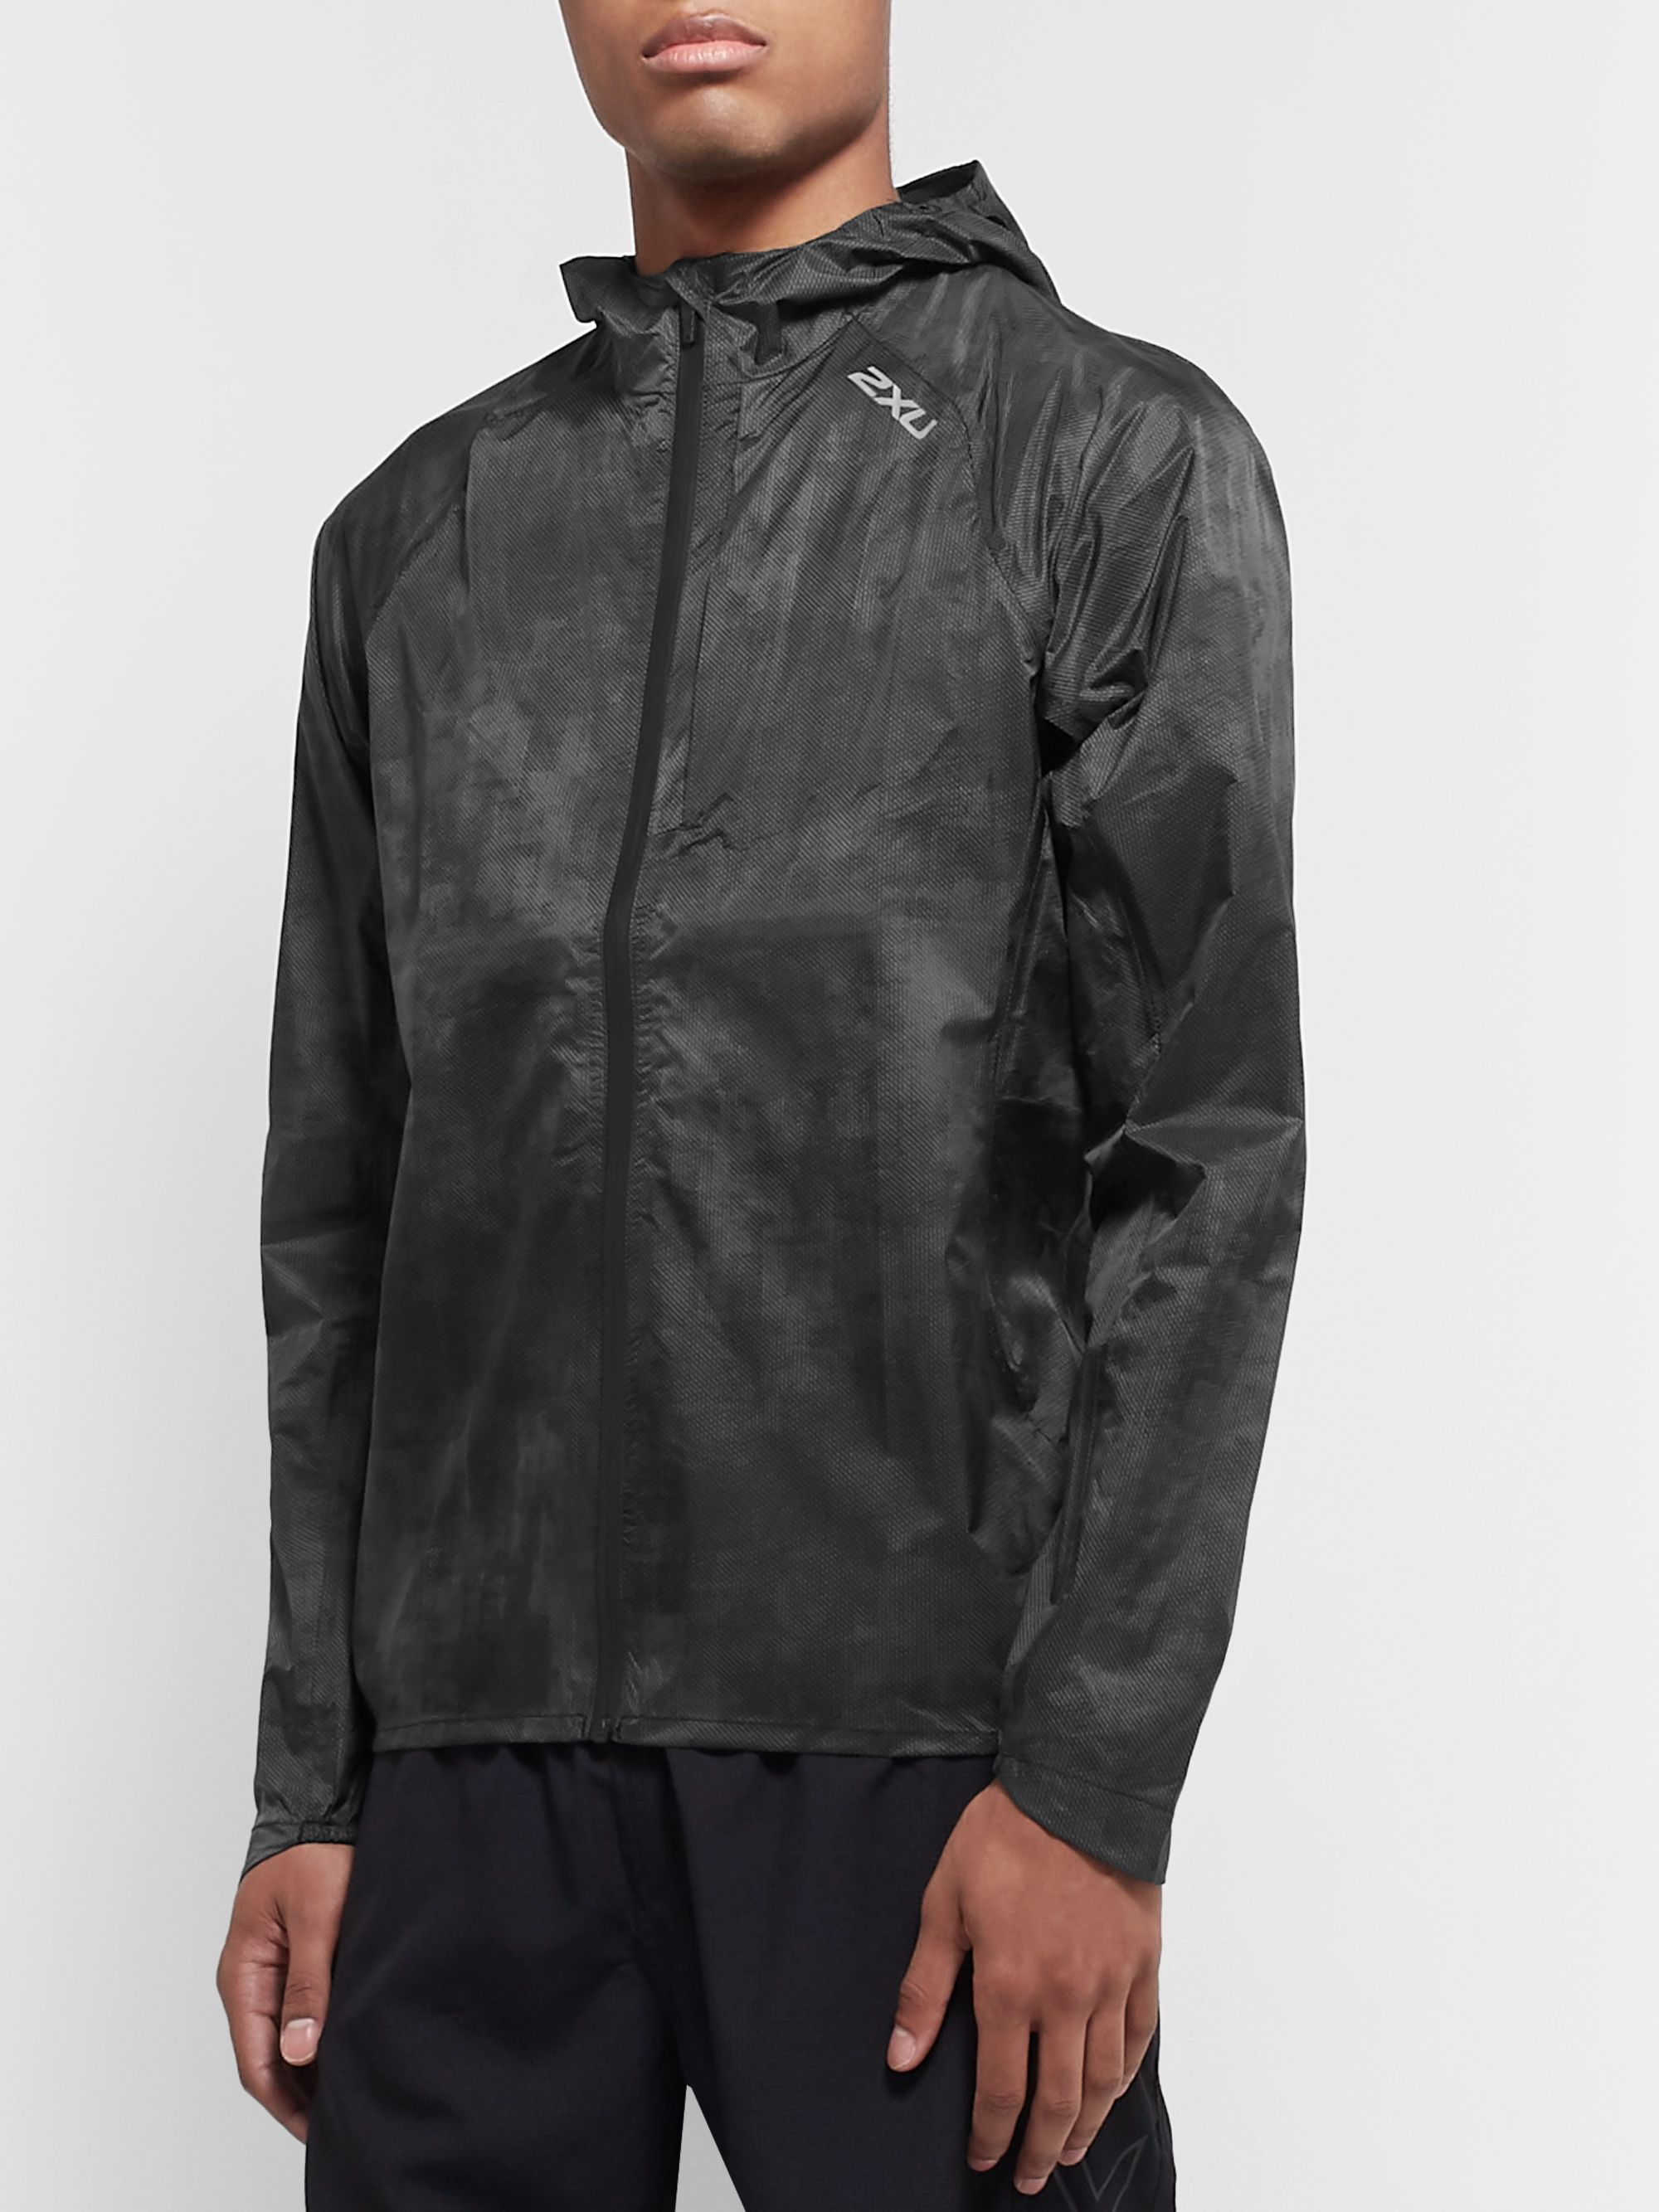 2XU Pursuit AC Printed Waterproof Nylon Hooded Jacket